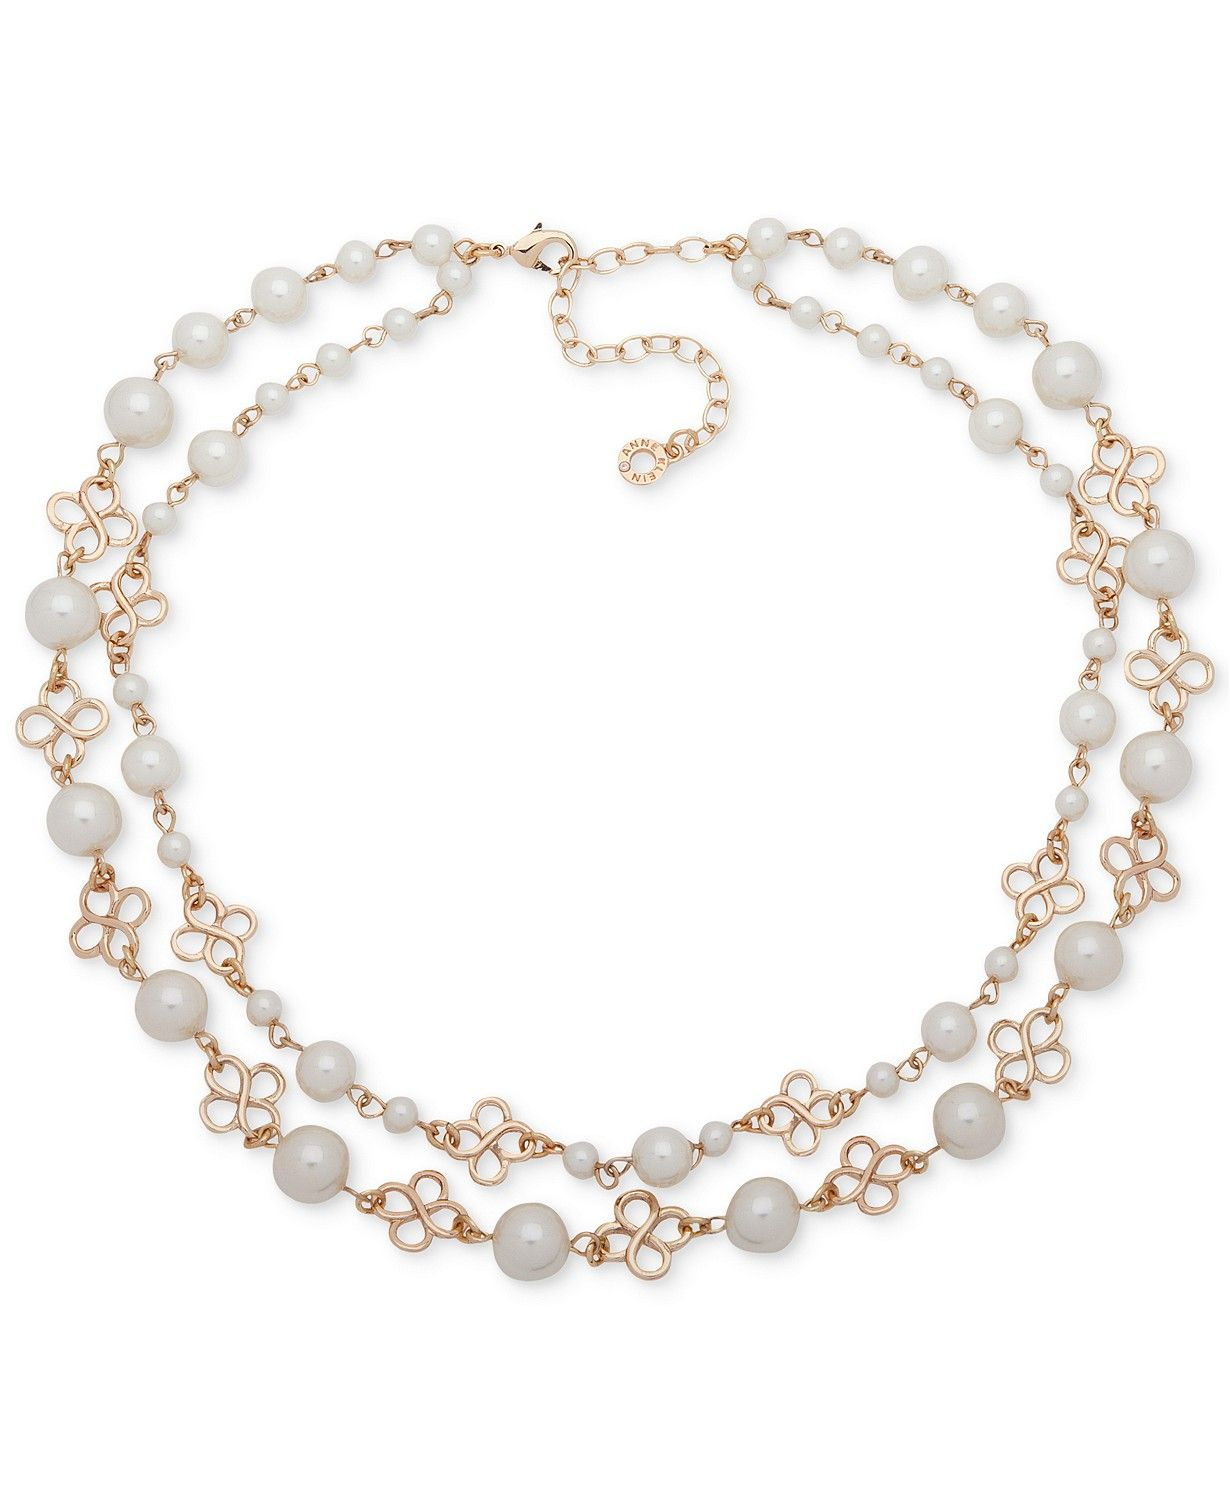 af7fef32c926 Anne Klein Gold-Tone Imitation Pearl Double-Row Collar Necklace